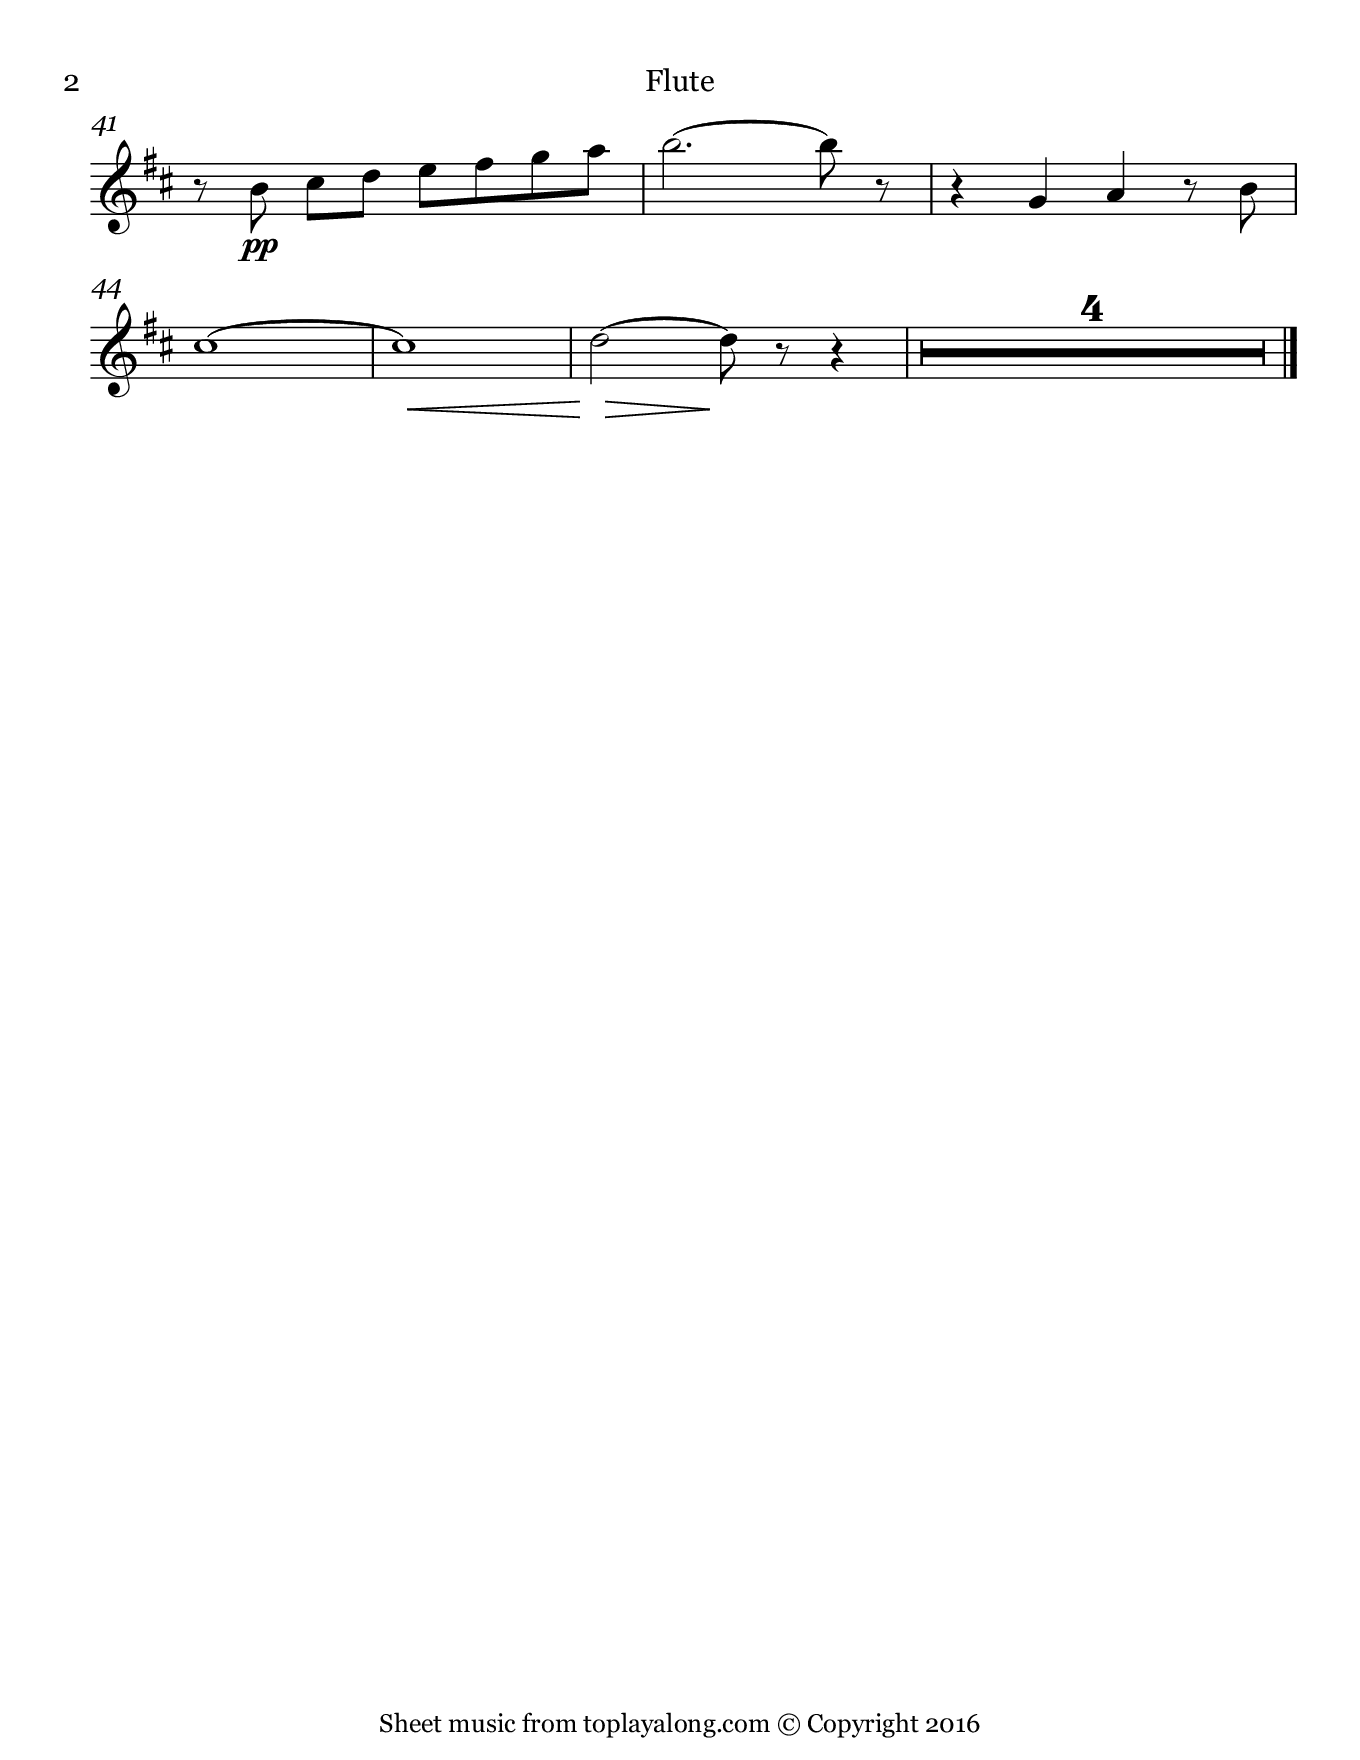 La fleur que tu m'avais jetée from Carmen by Bizet. Sheet music for Flute, page 2.